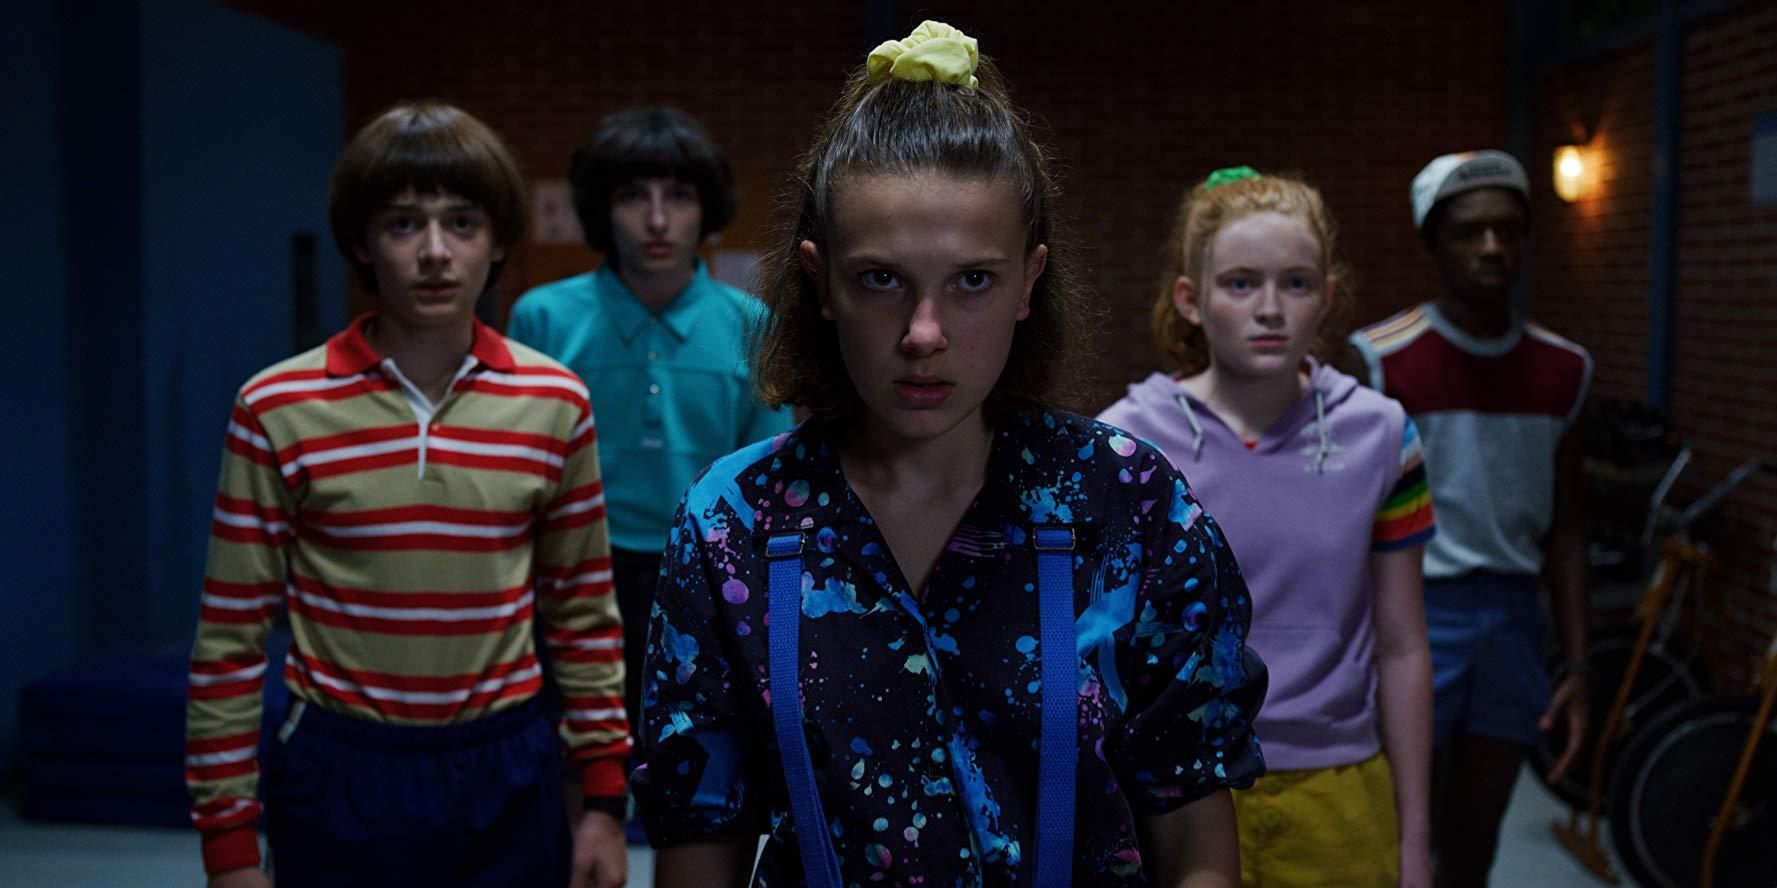 Is 'Stranger Things 3' Any Good? Here's What The Reviews Have To Say